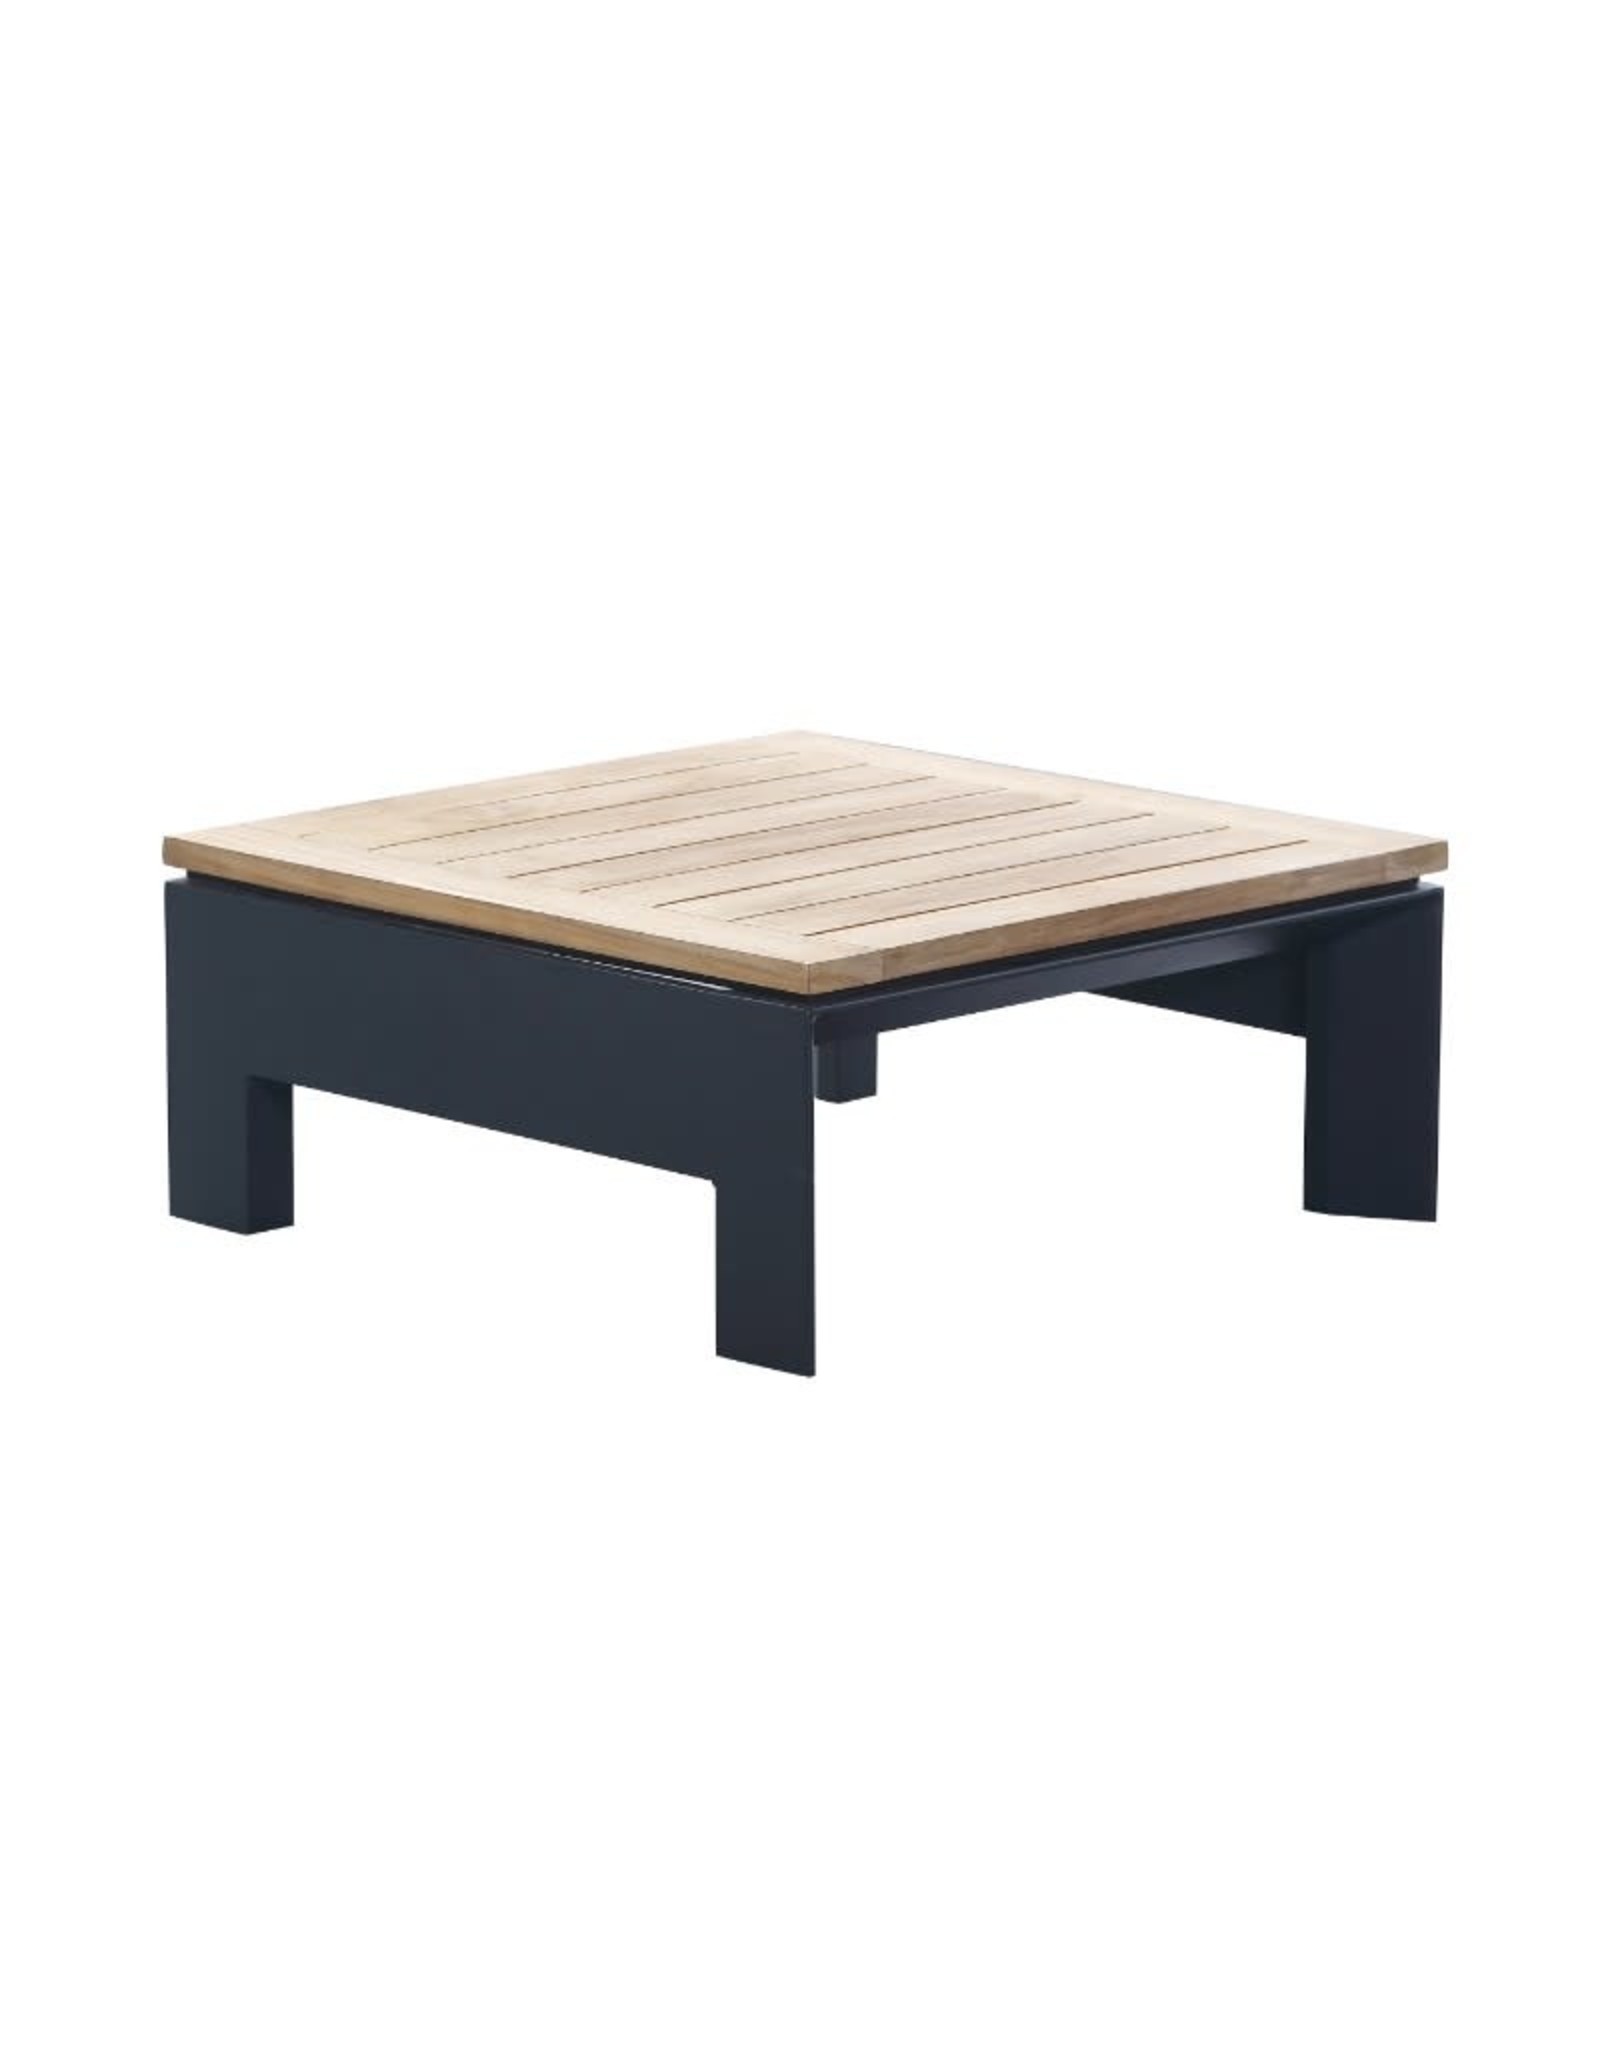 Hamilton Bay OUTDOOR Hamilton Bay OUTDOOR Terrace Coffee Table new